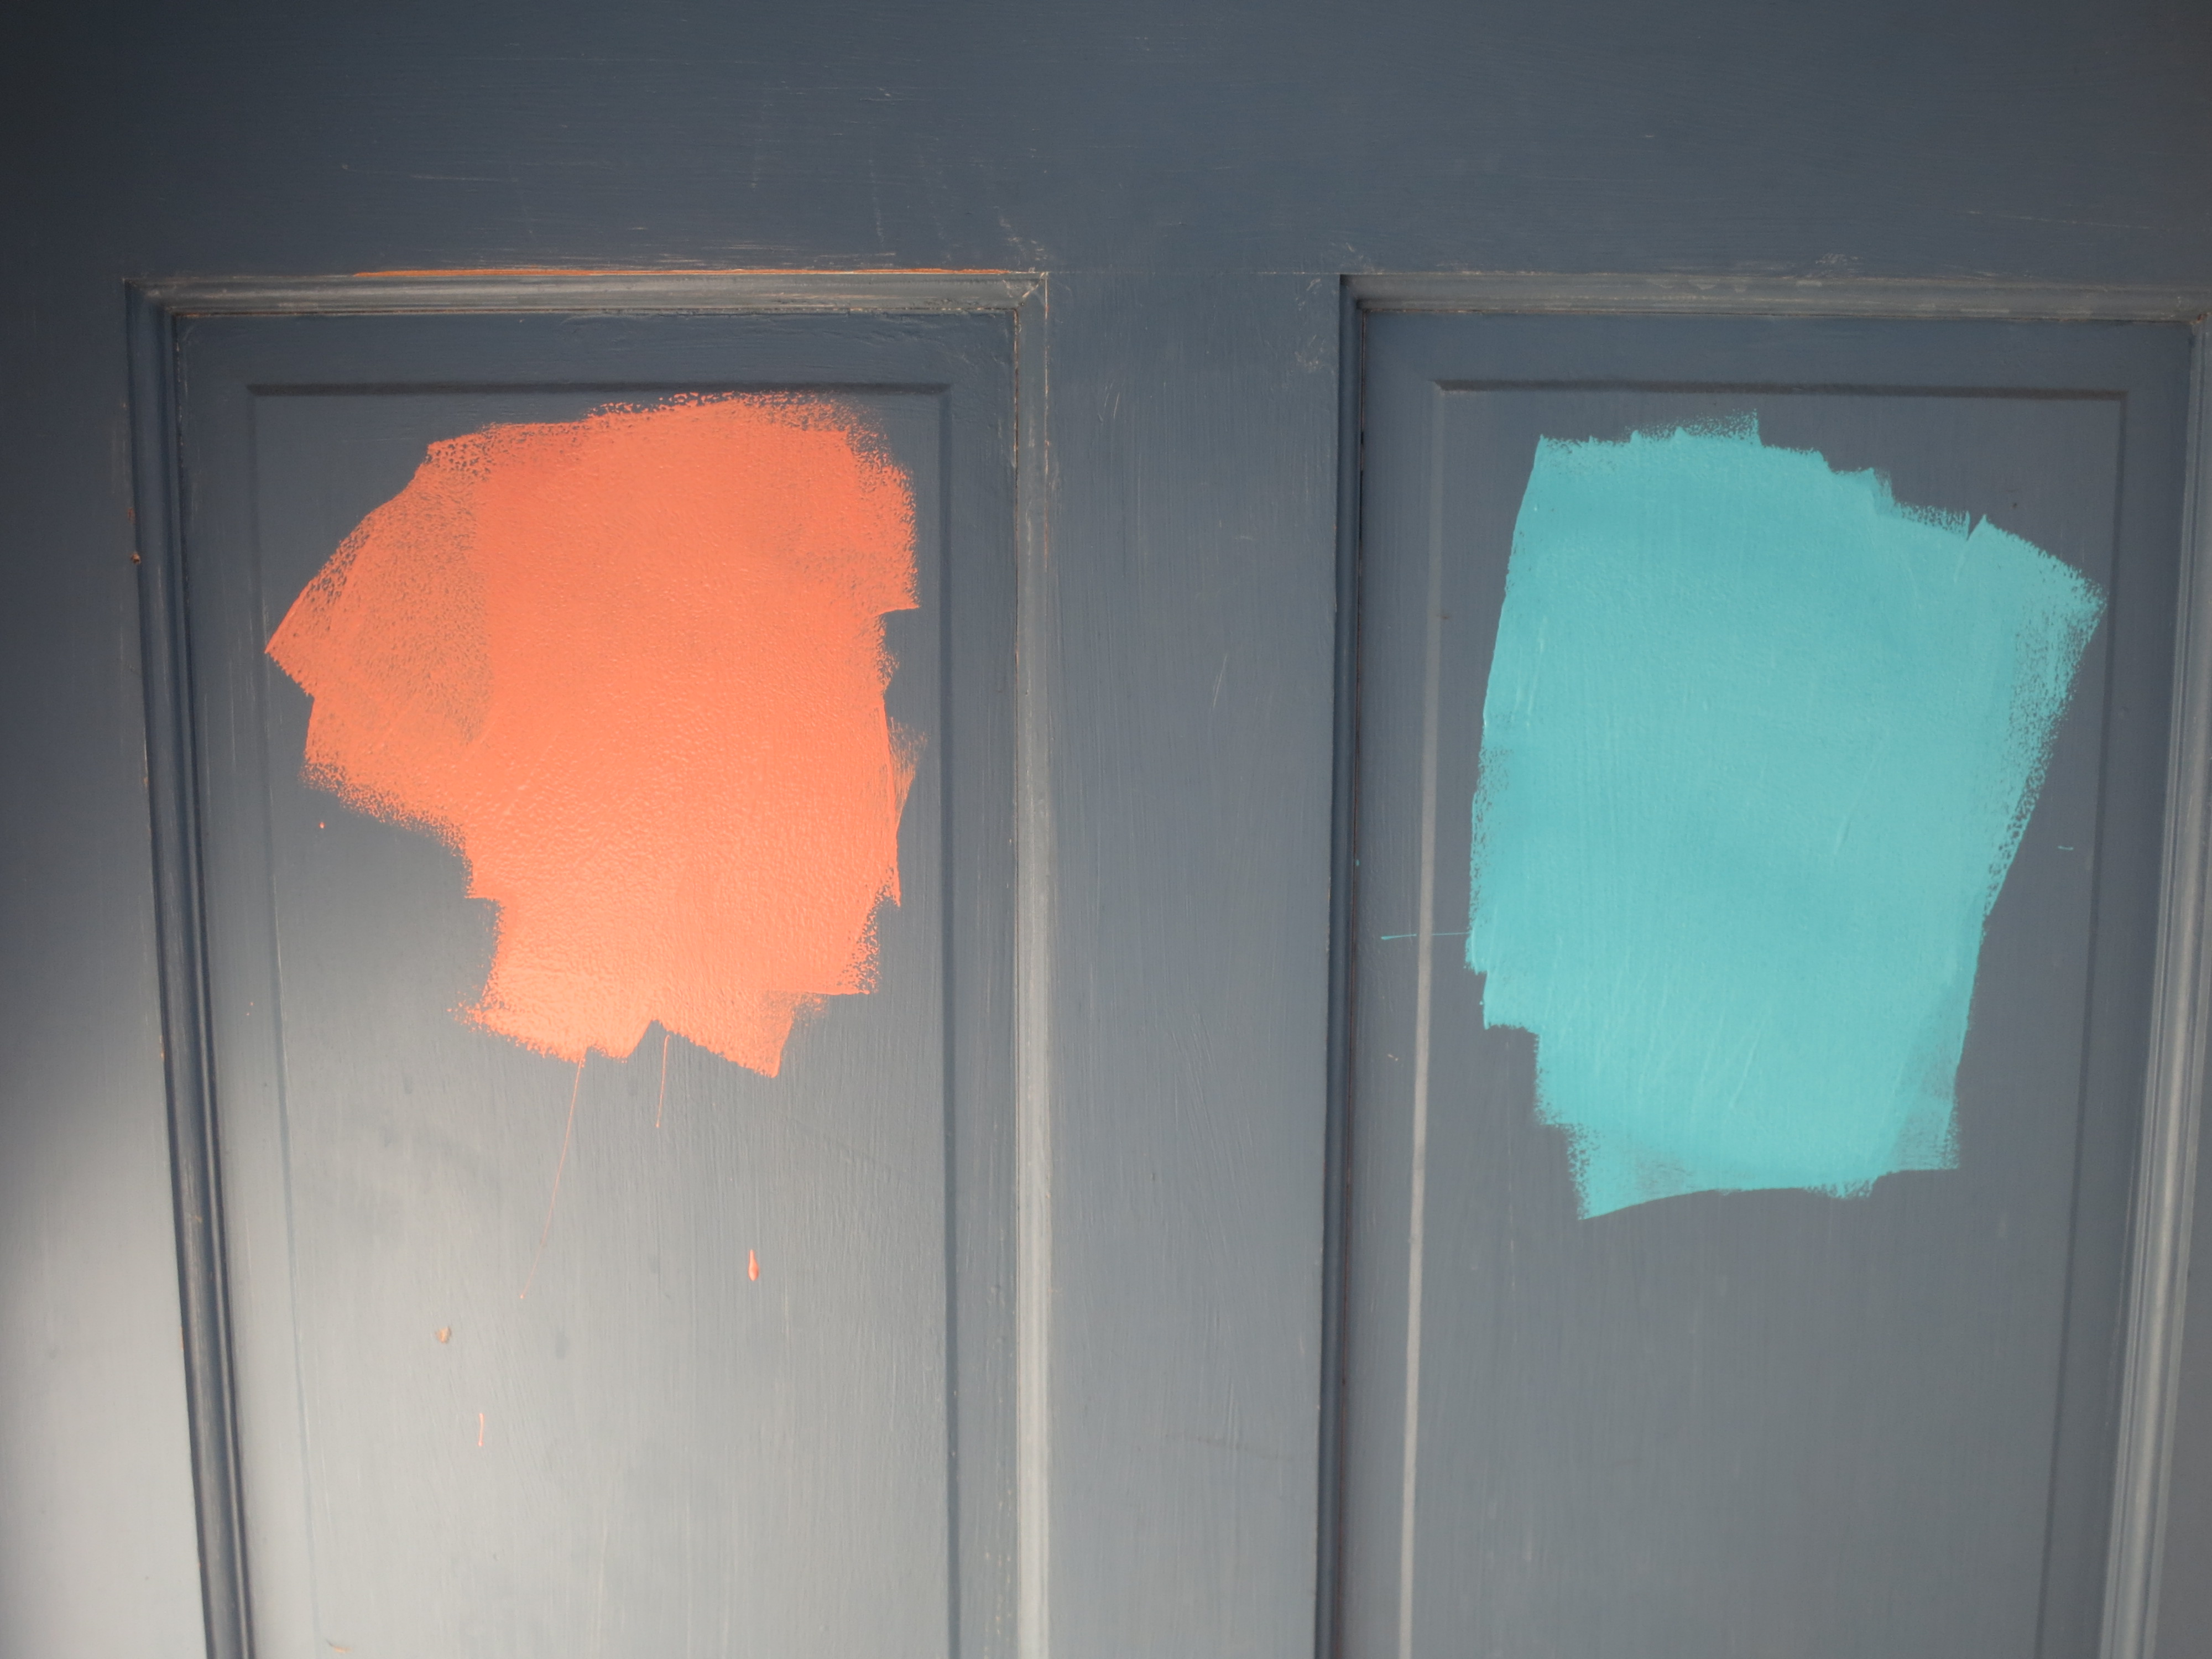 front - paint samples on door